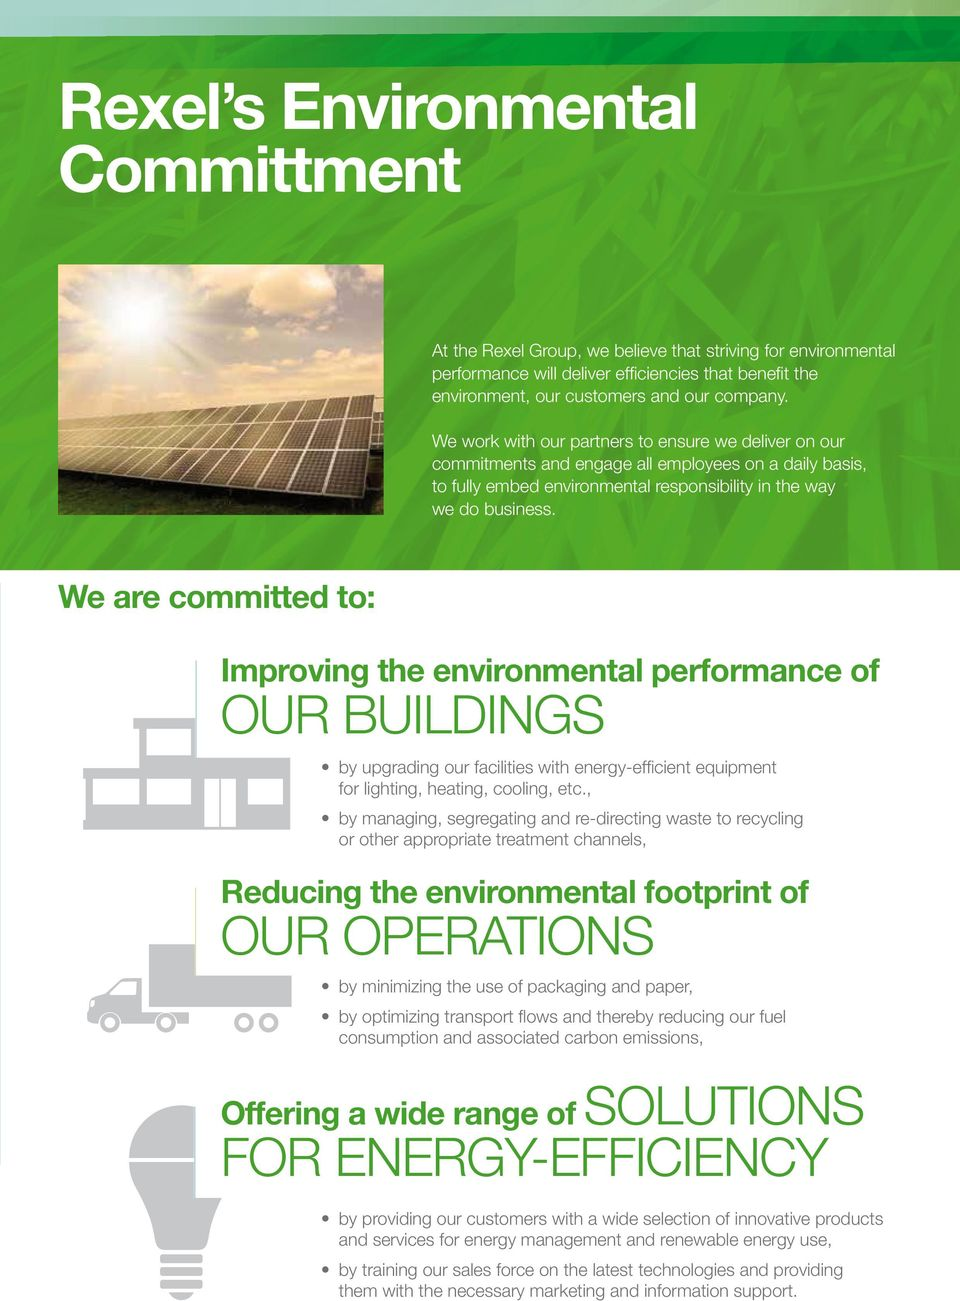 We are committed to: Improving the environmental performance of OUR BUILDINGS by upgrading our facilities with energy-efficient equipment for lighting, heating, cooling, etc.